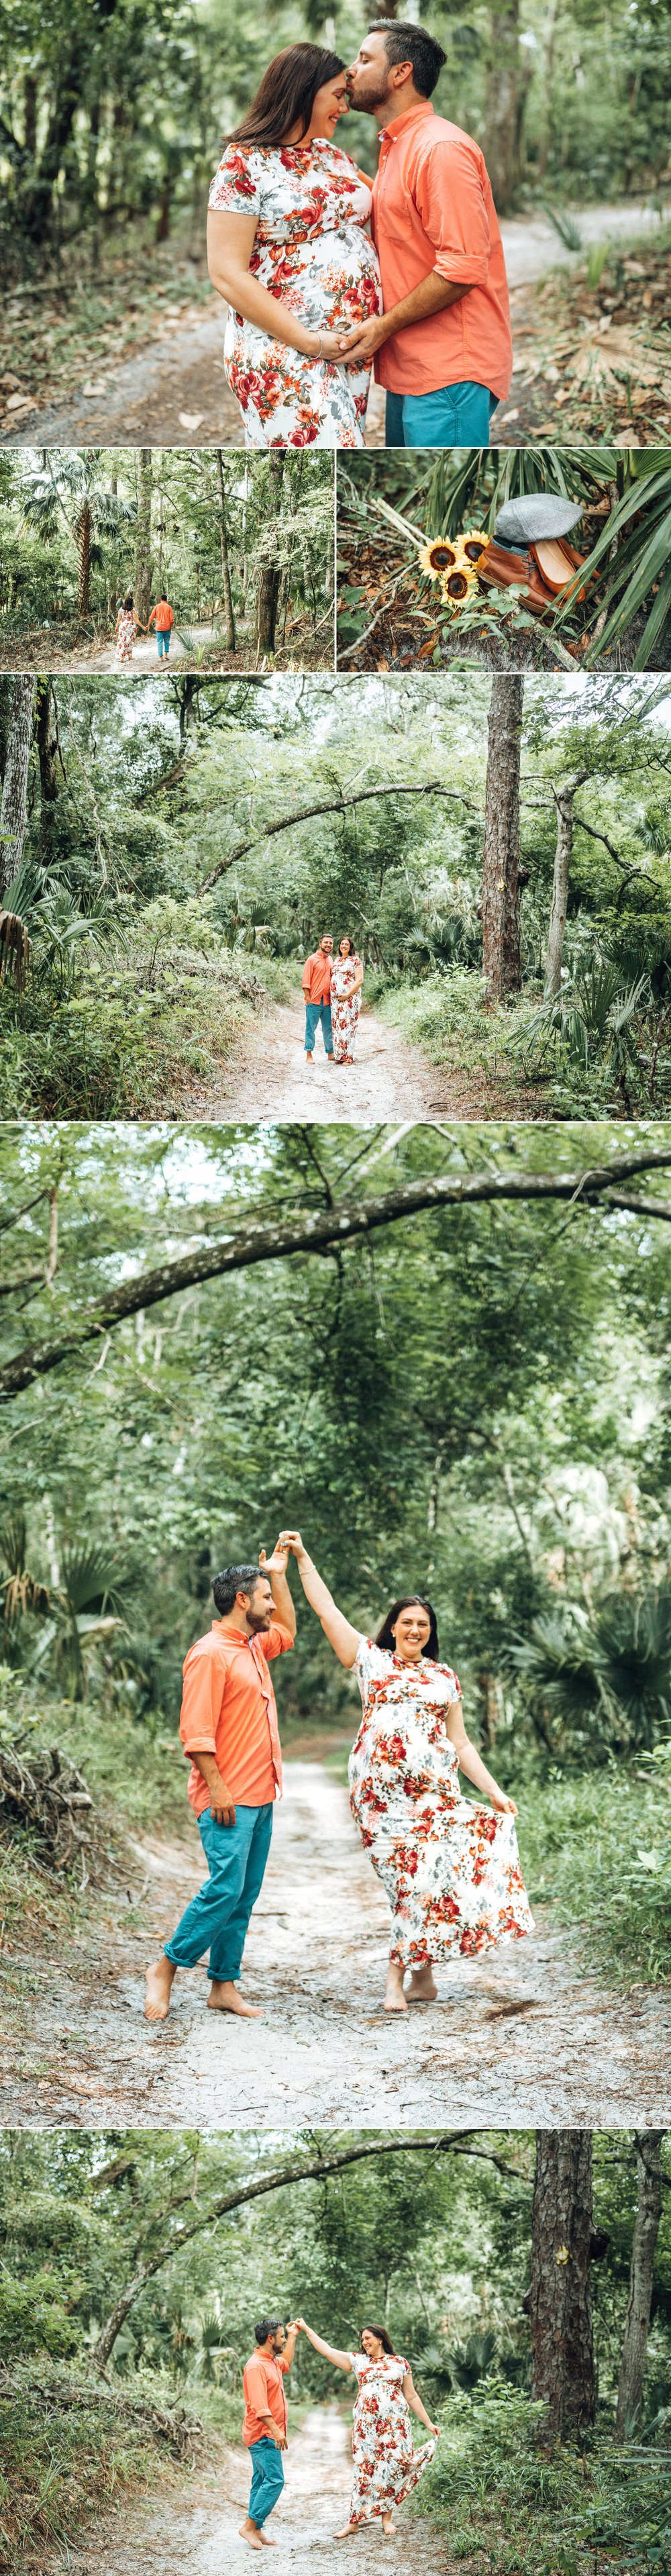 Boho Florida Maternity Photo Session- Kelly Springs State Park-Meghan+Michael5.jpg